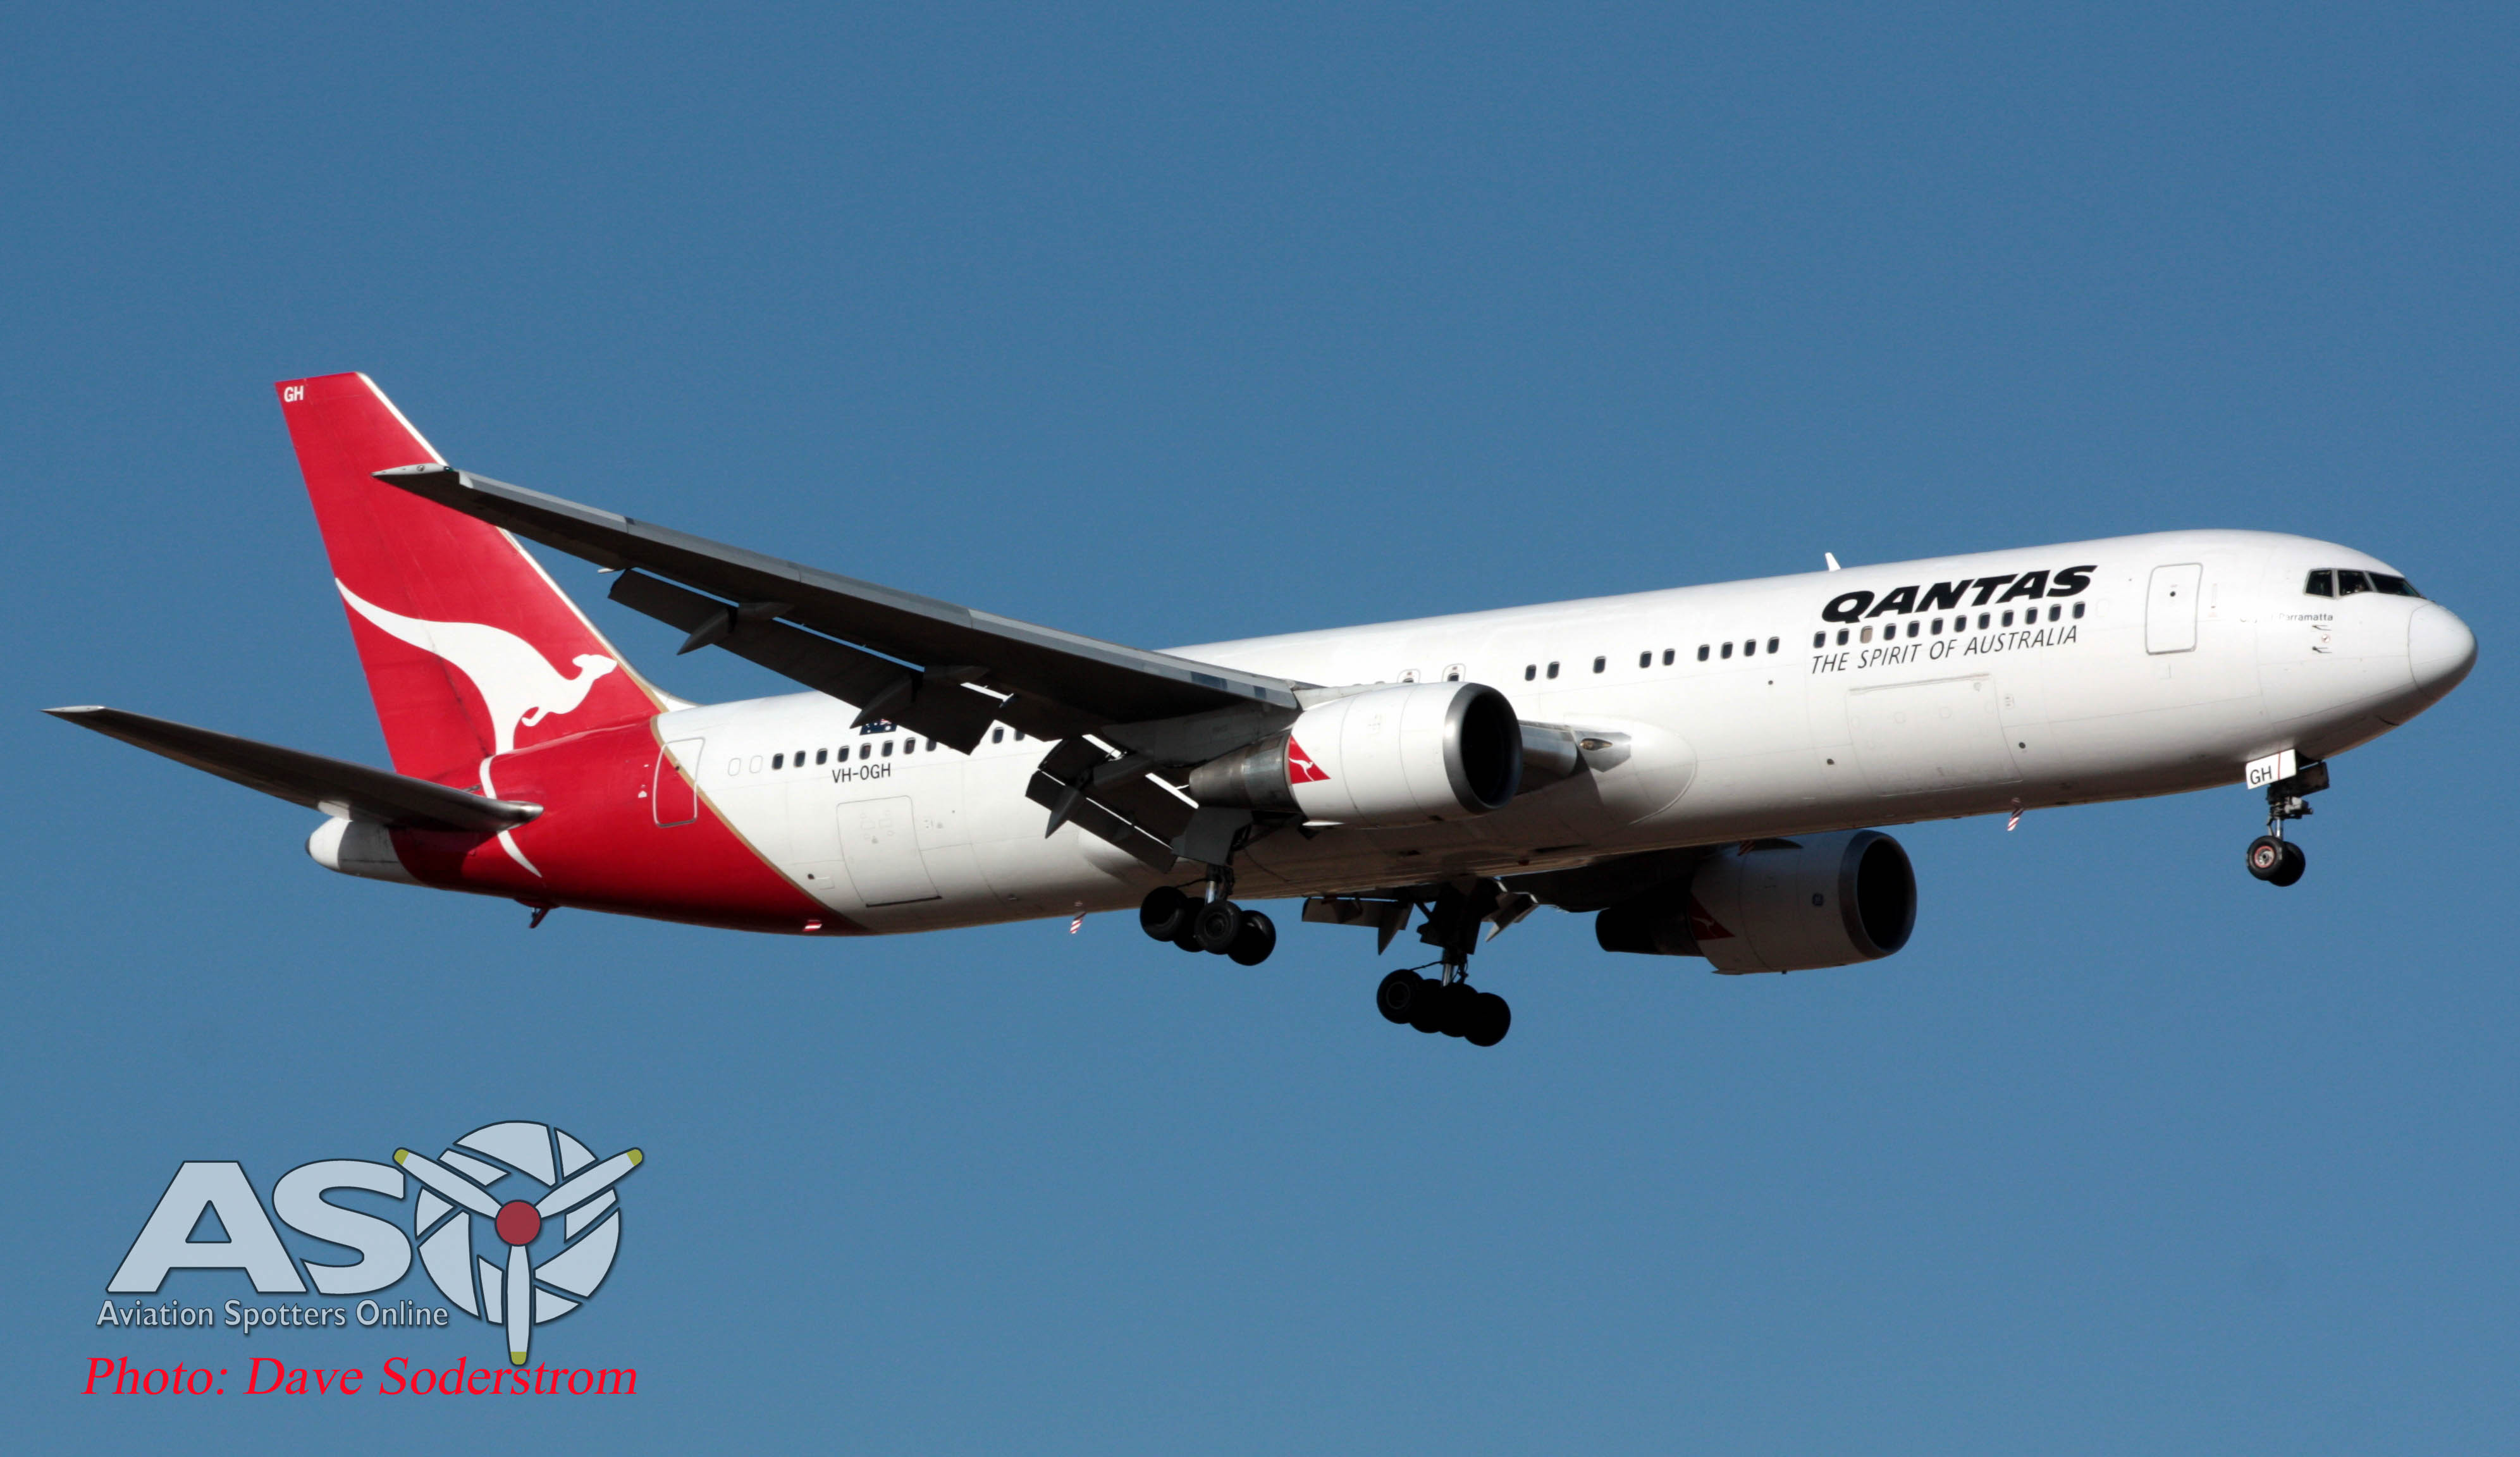 VH-OGH Boeing 767 QANTAS coming into Melbourne.